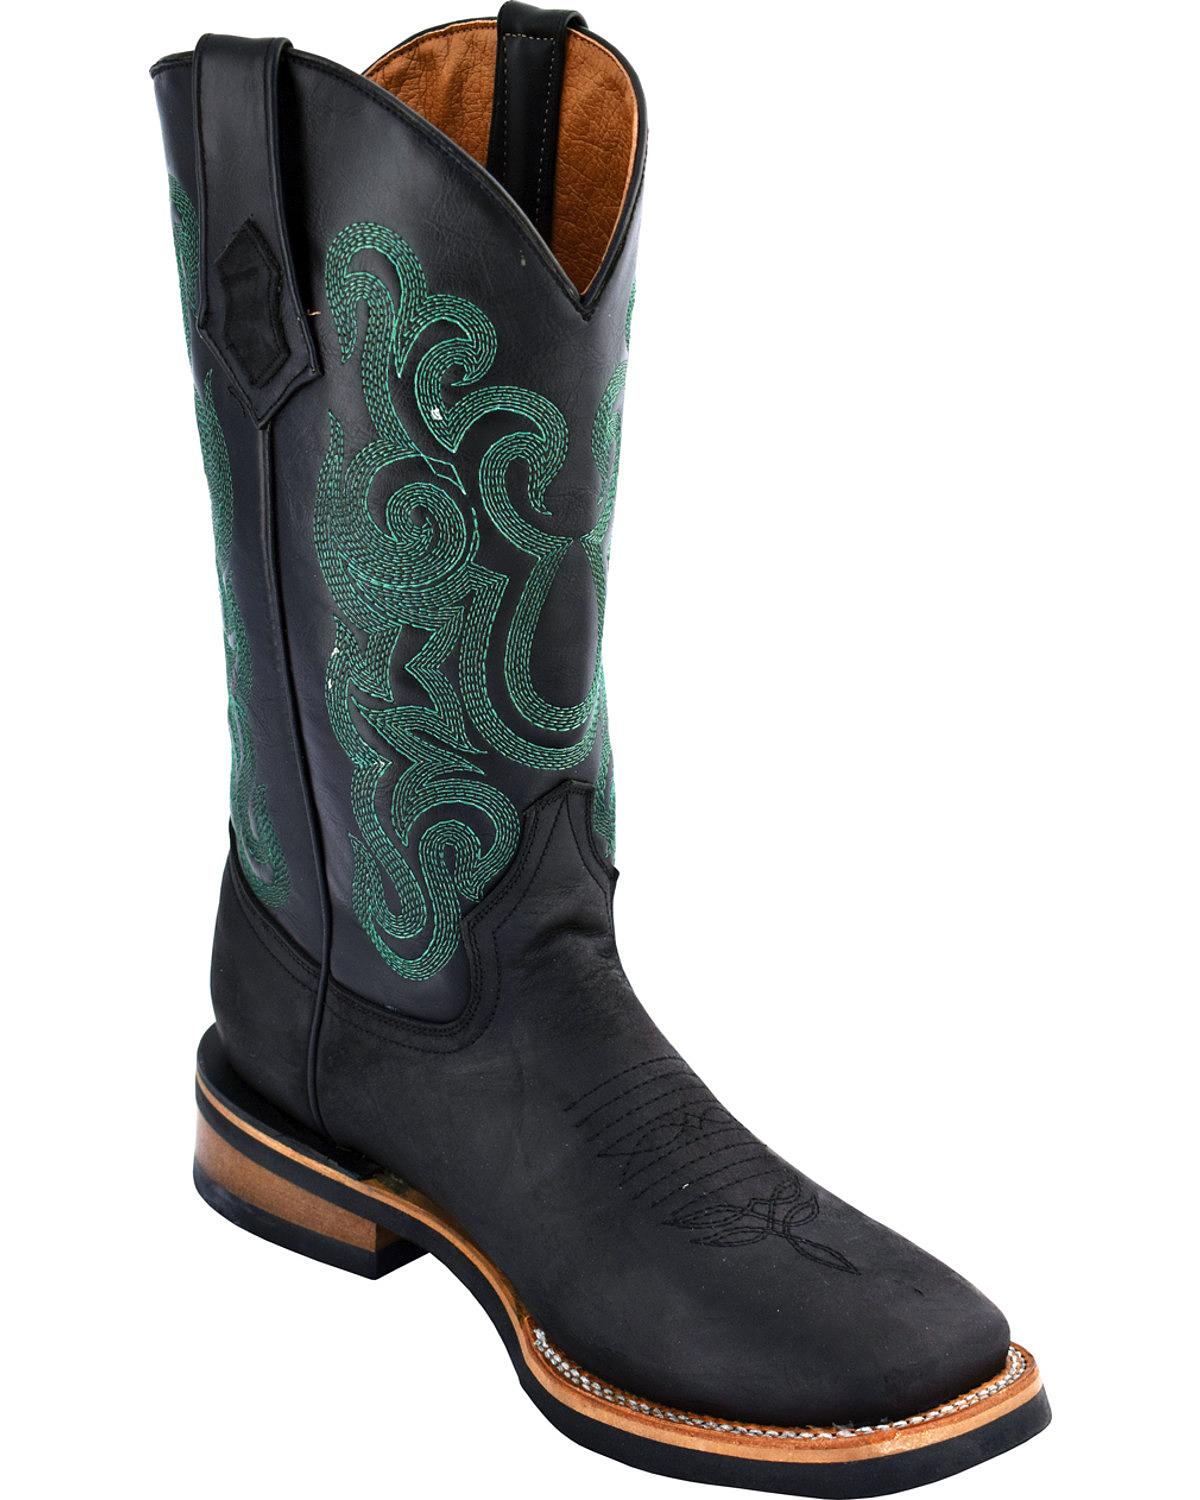 Ferrini Men's Maverick Cowboy Boot Square Toe 15093-04 by Ferrini